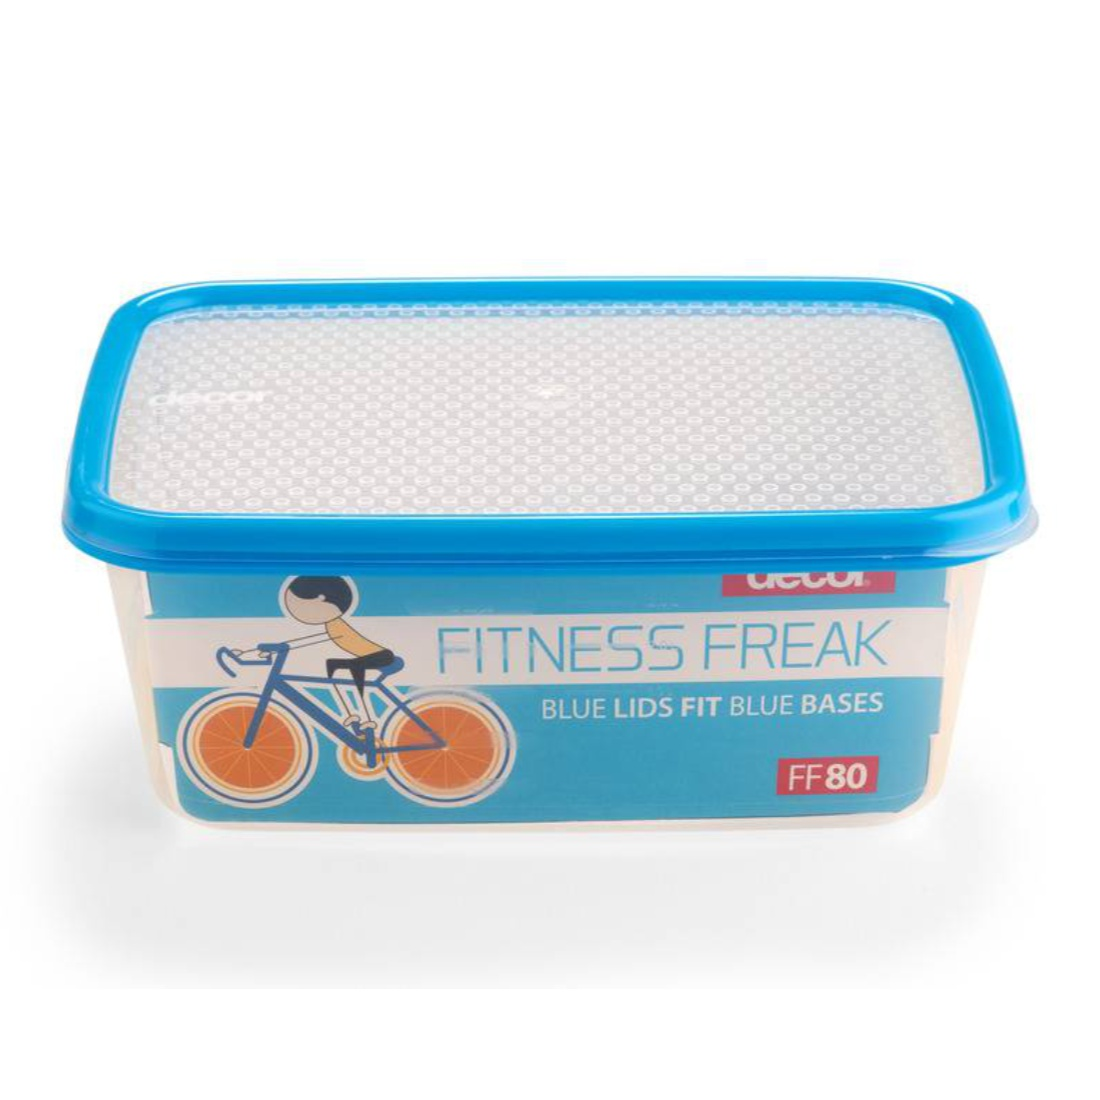 Fitness Freak 80 3.0L Plastic Containers by Decor